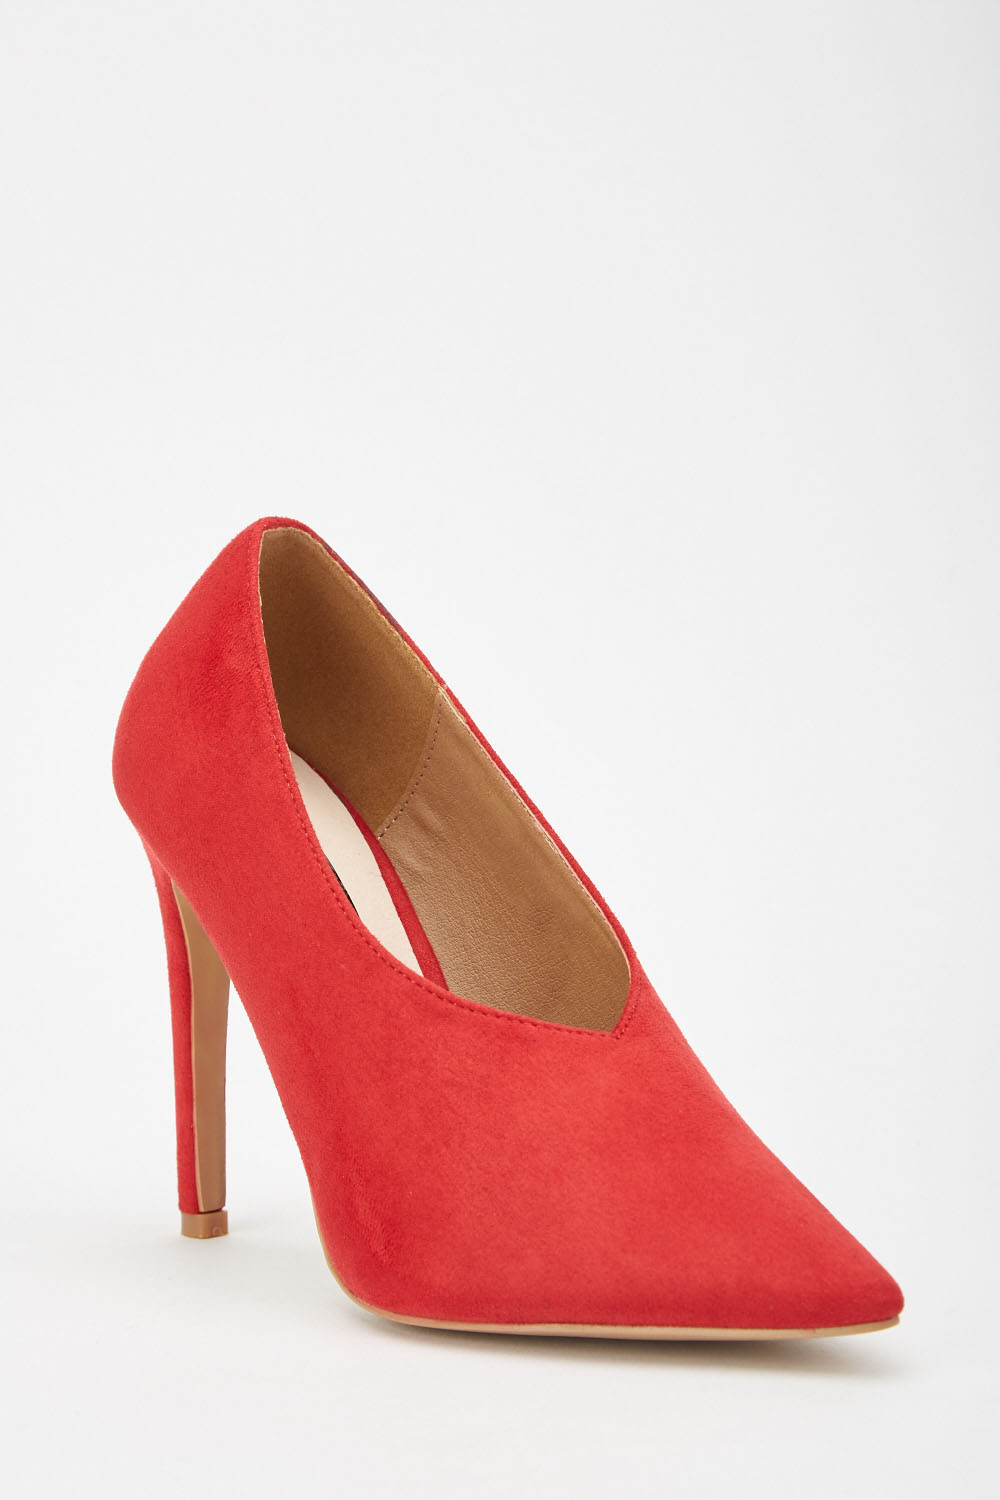 5be2d8b46ae1 LOST INK Tate High Vamp Basic Court Heels - Red - Just £5